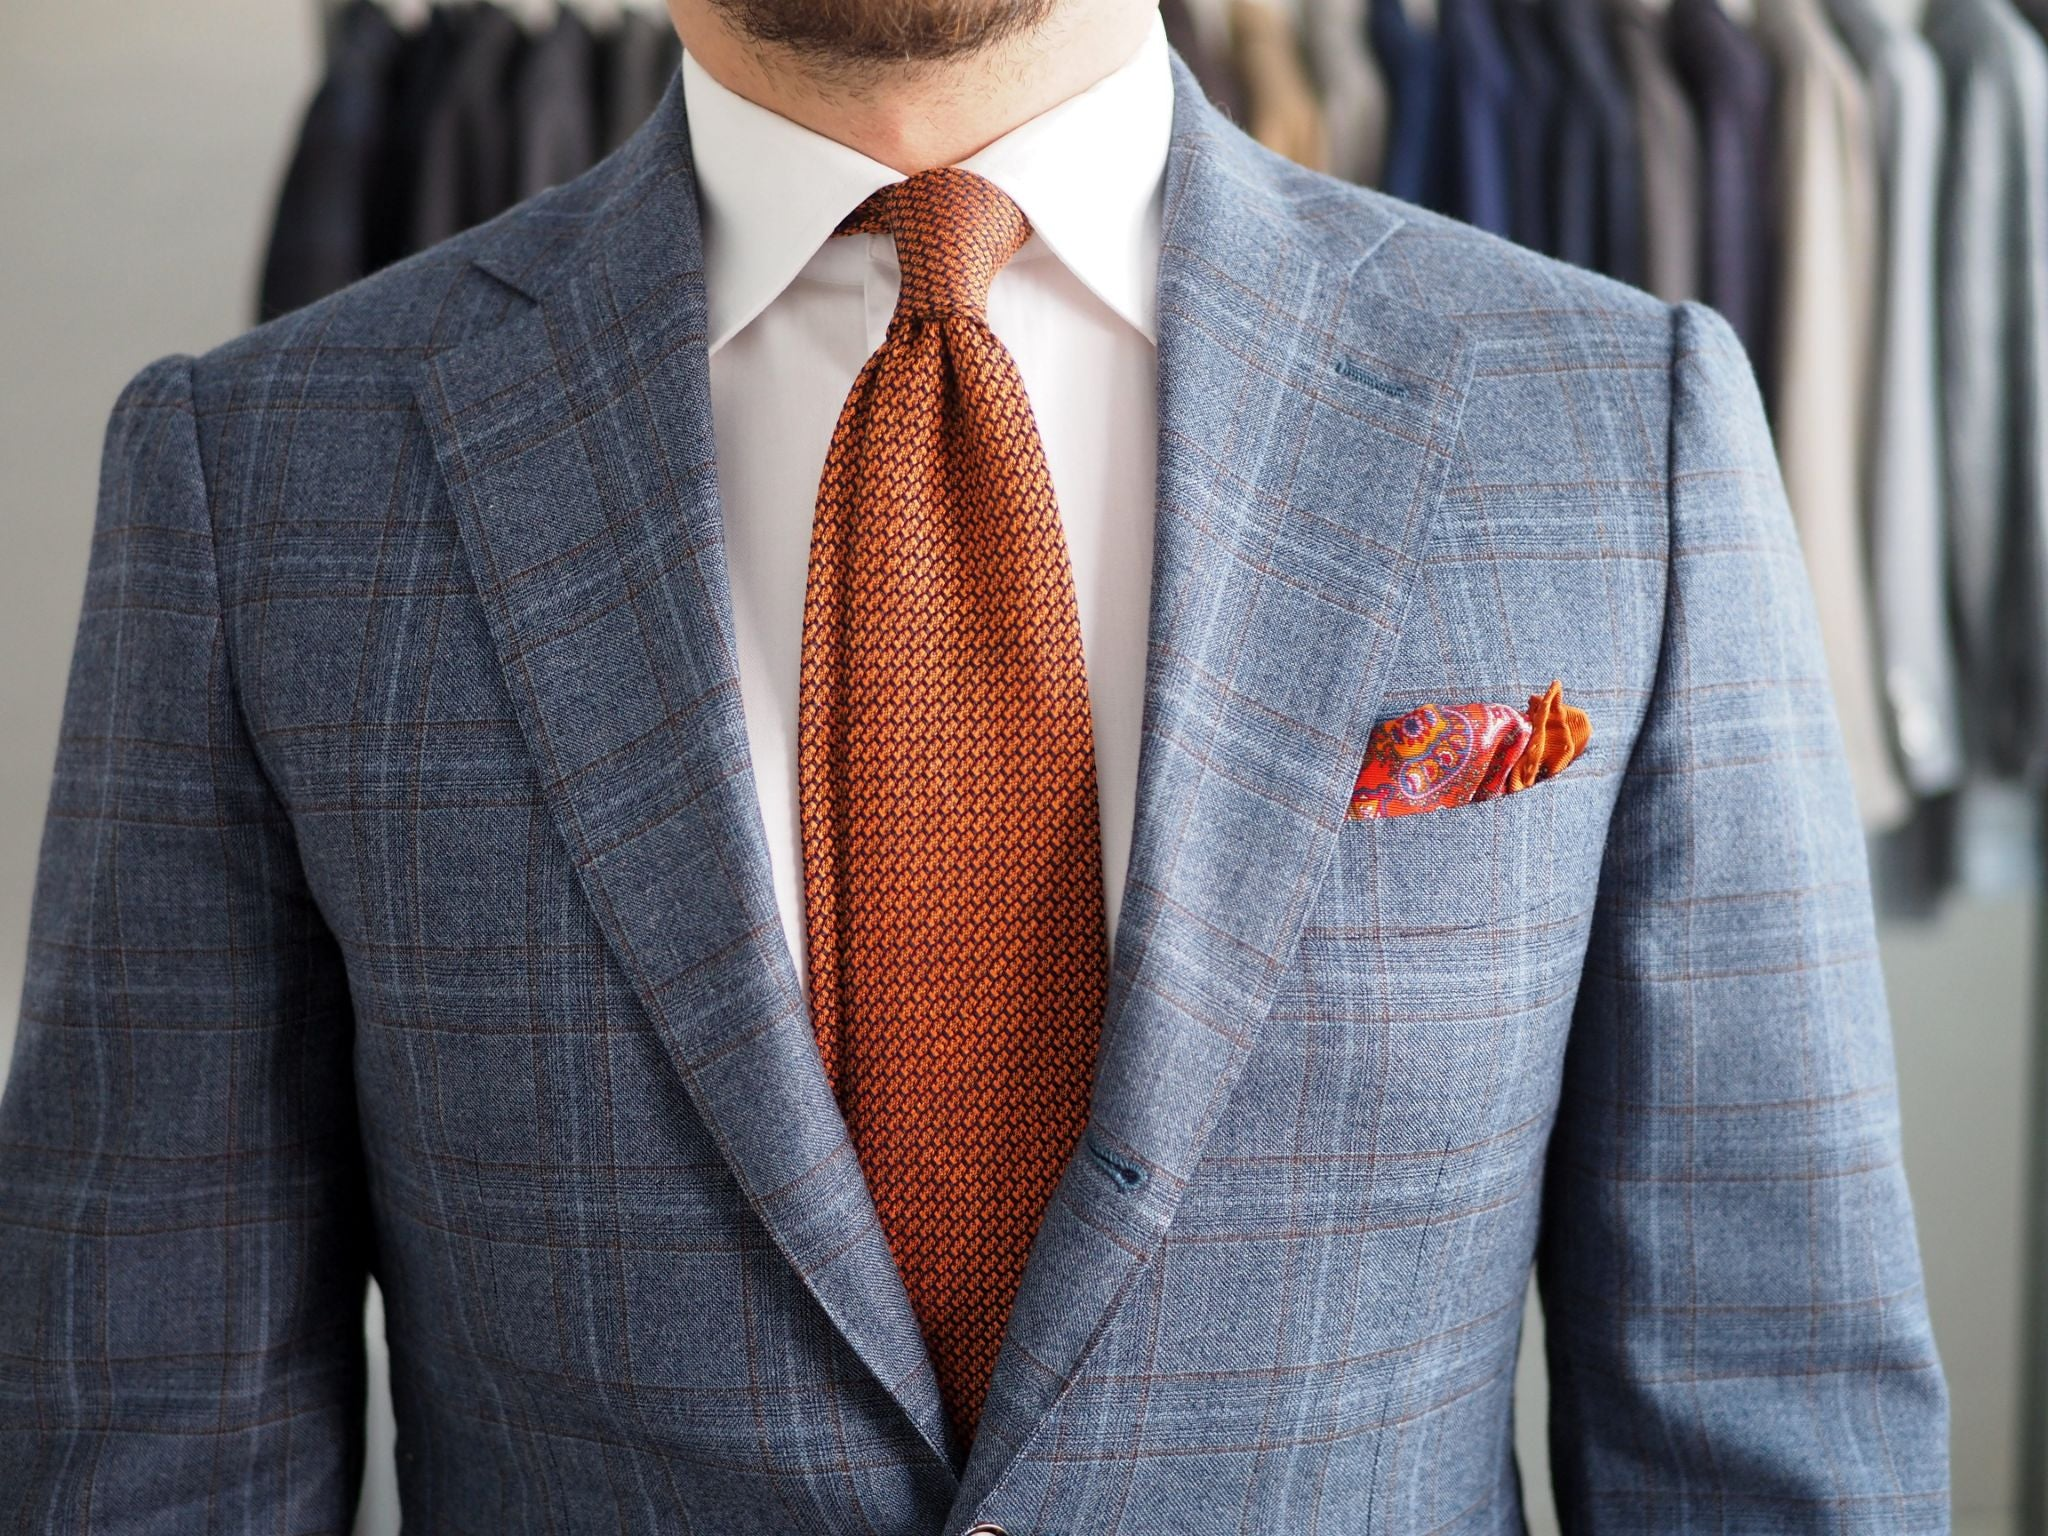 Details - orange tie with white shirt and checked suit